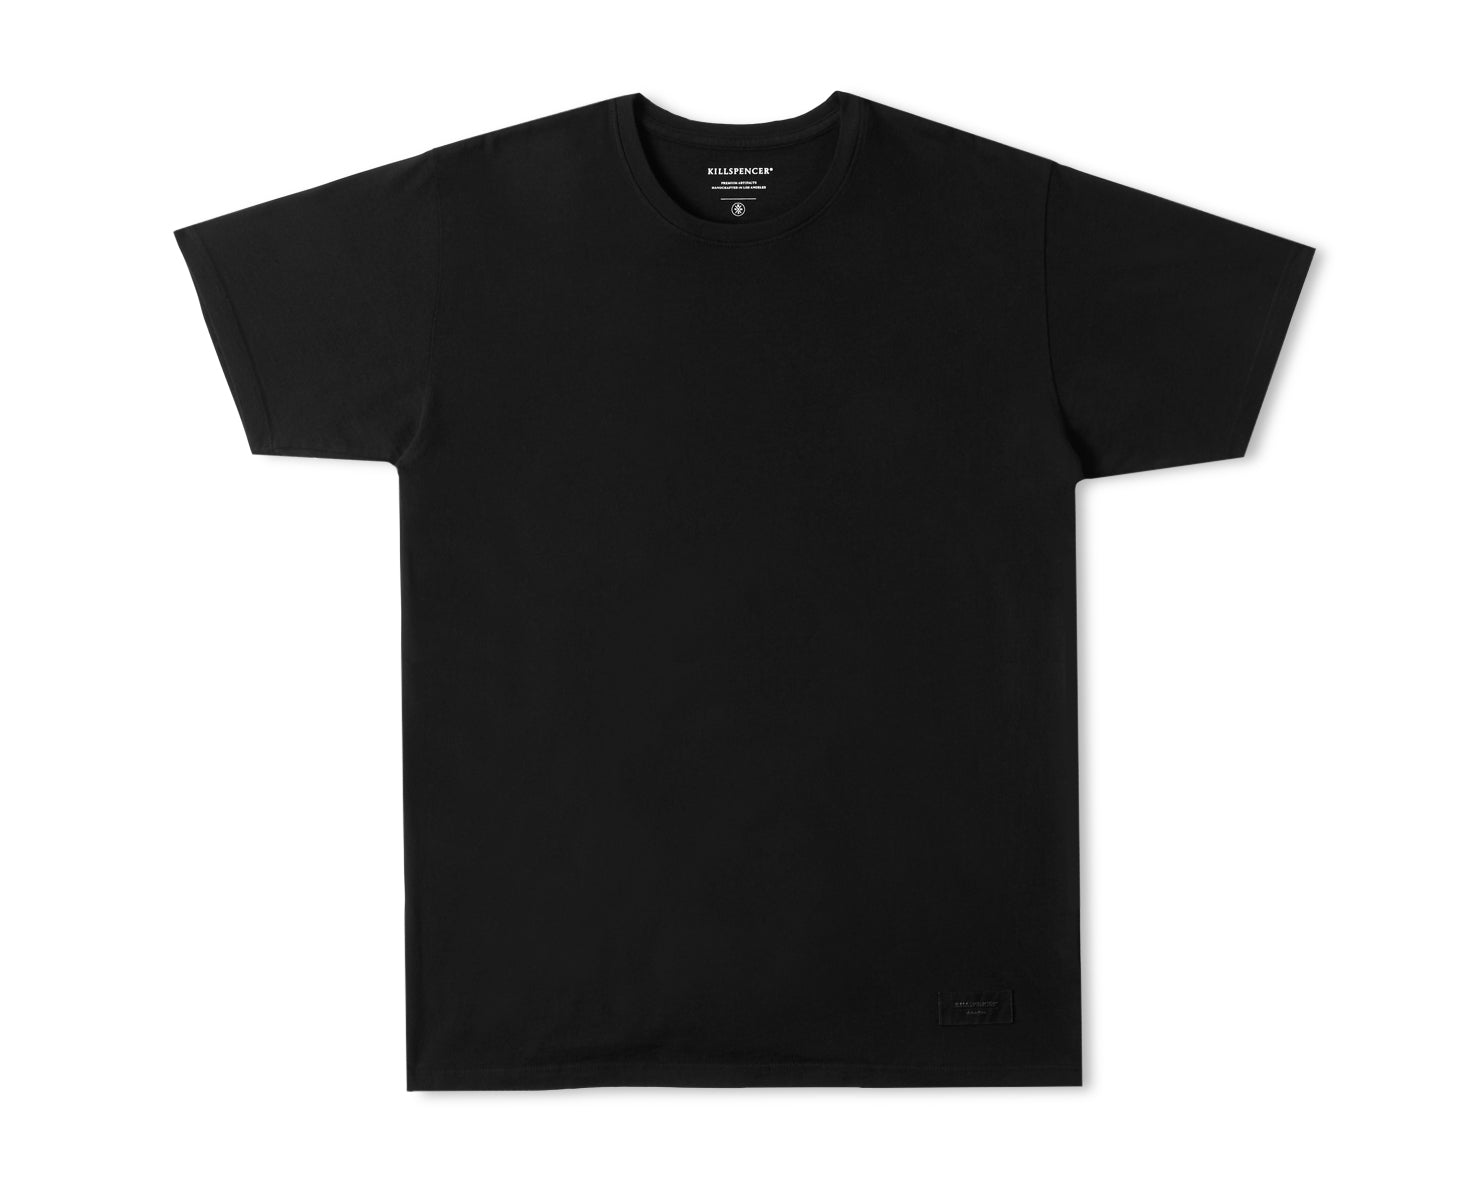 CREWNECK T-SHIRT | KILLSPENCER® - Black Cotton